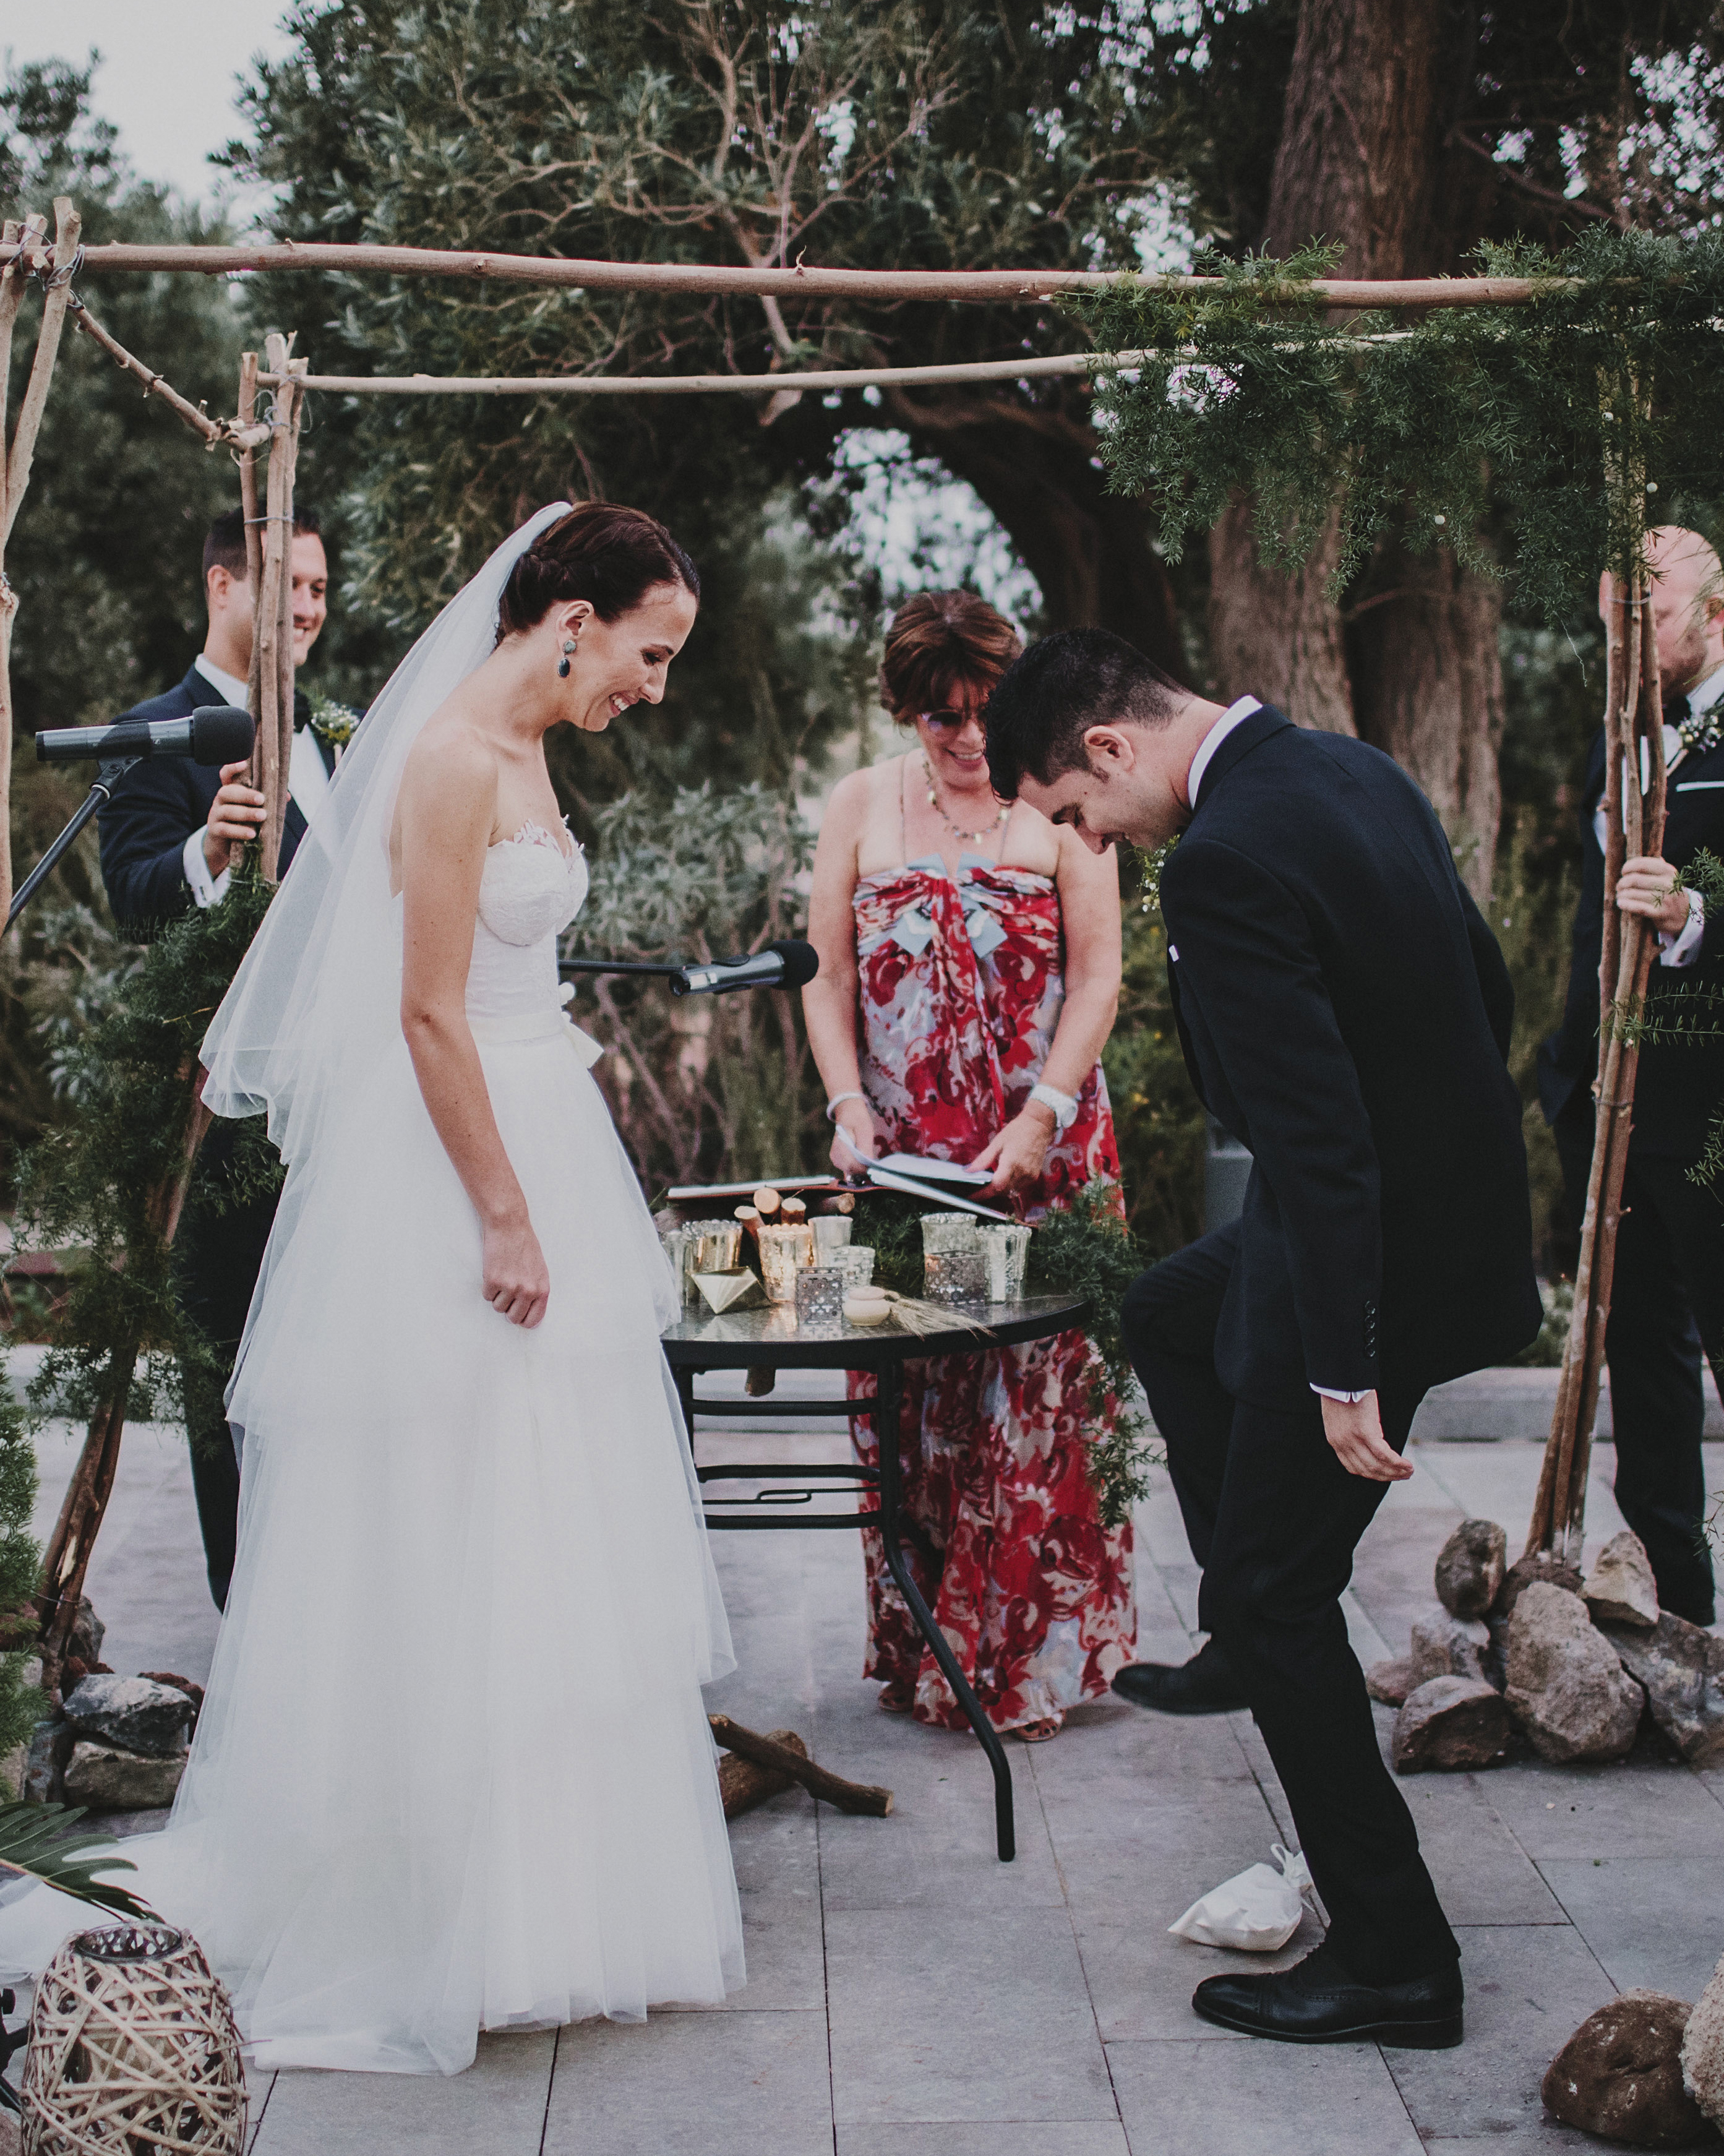 12 Unique Wedding Traditions from Around the World